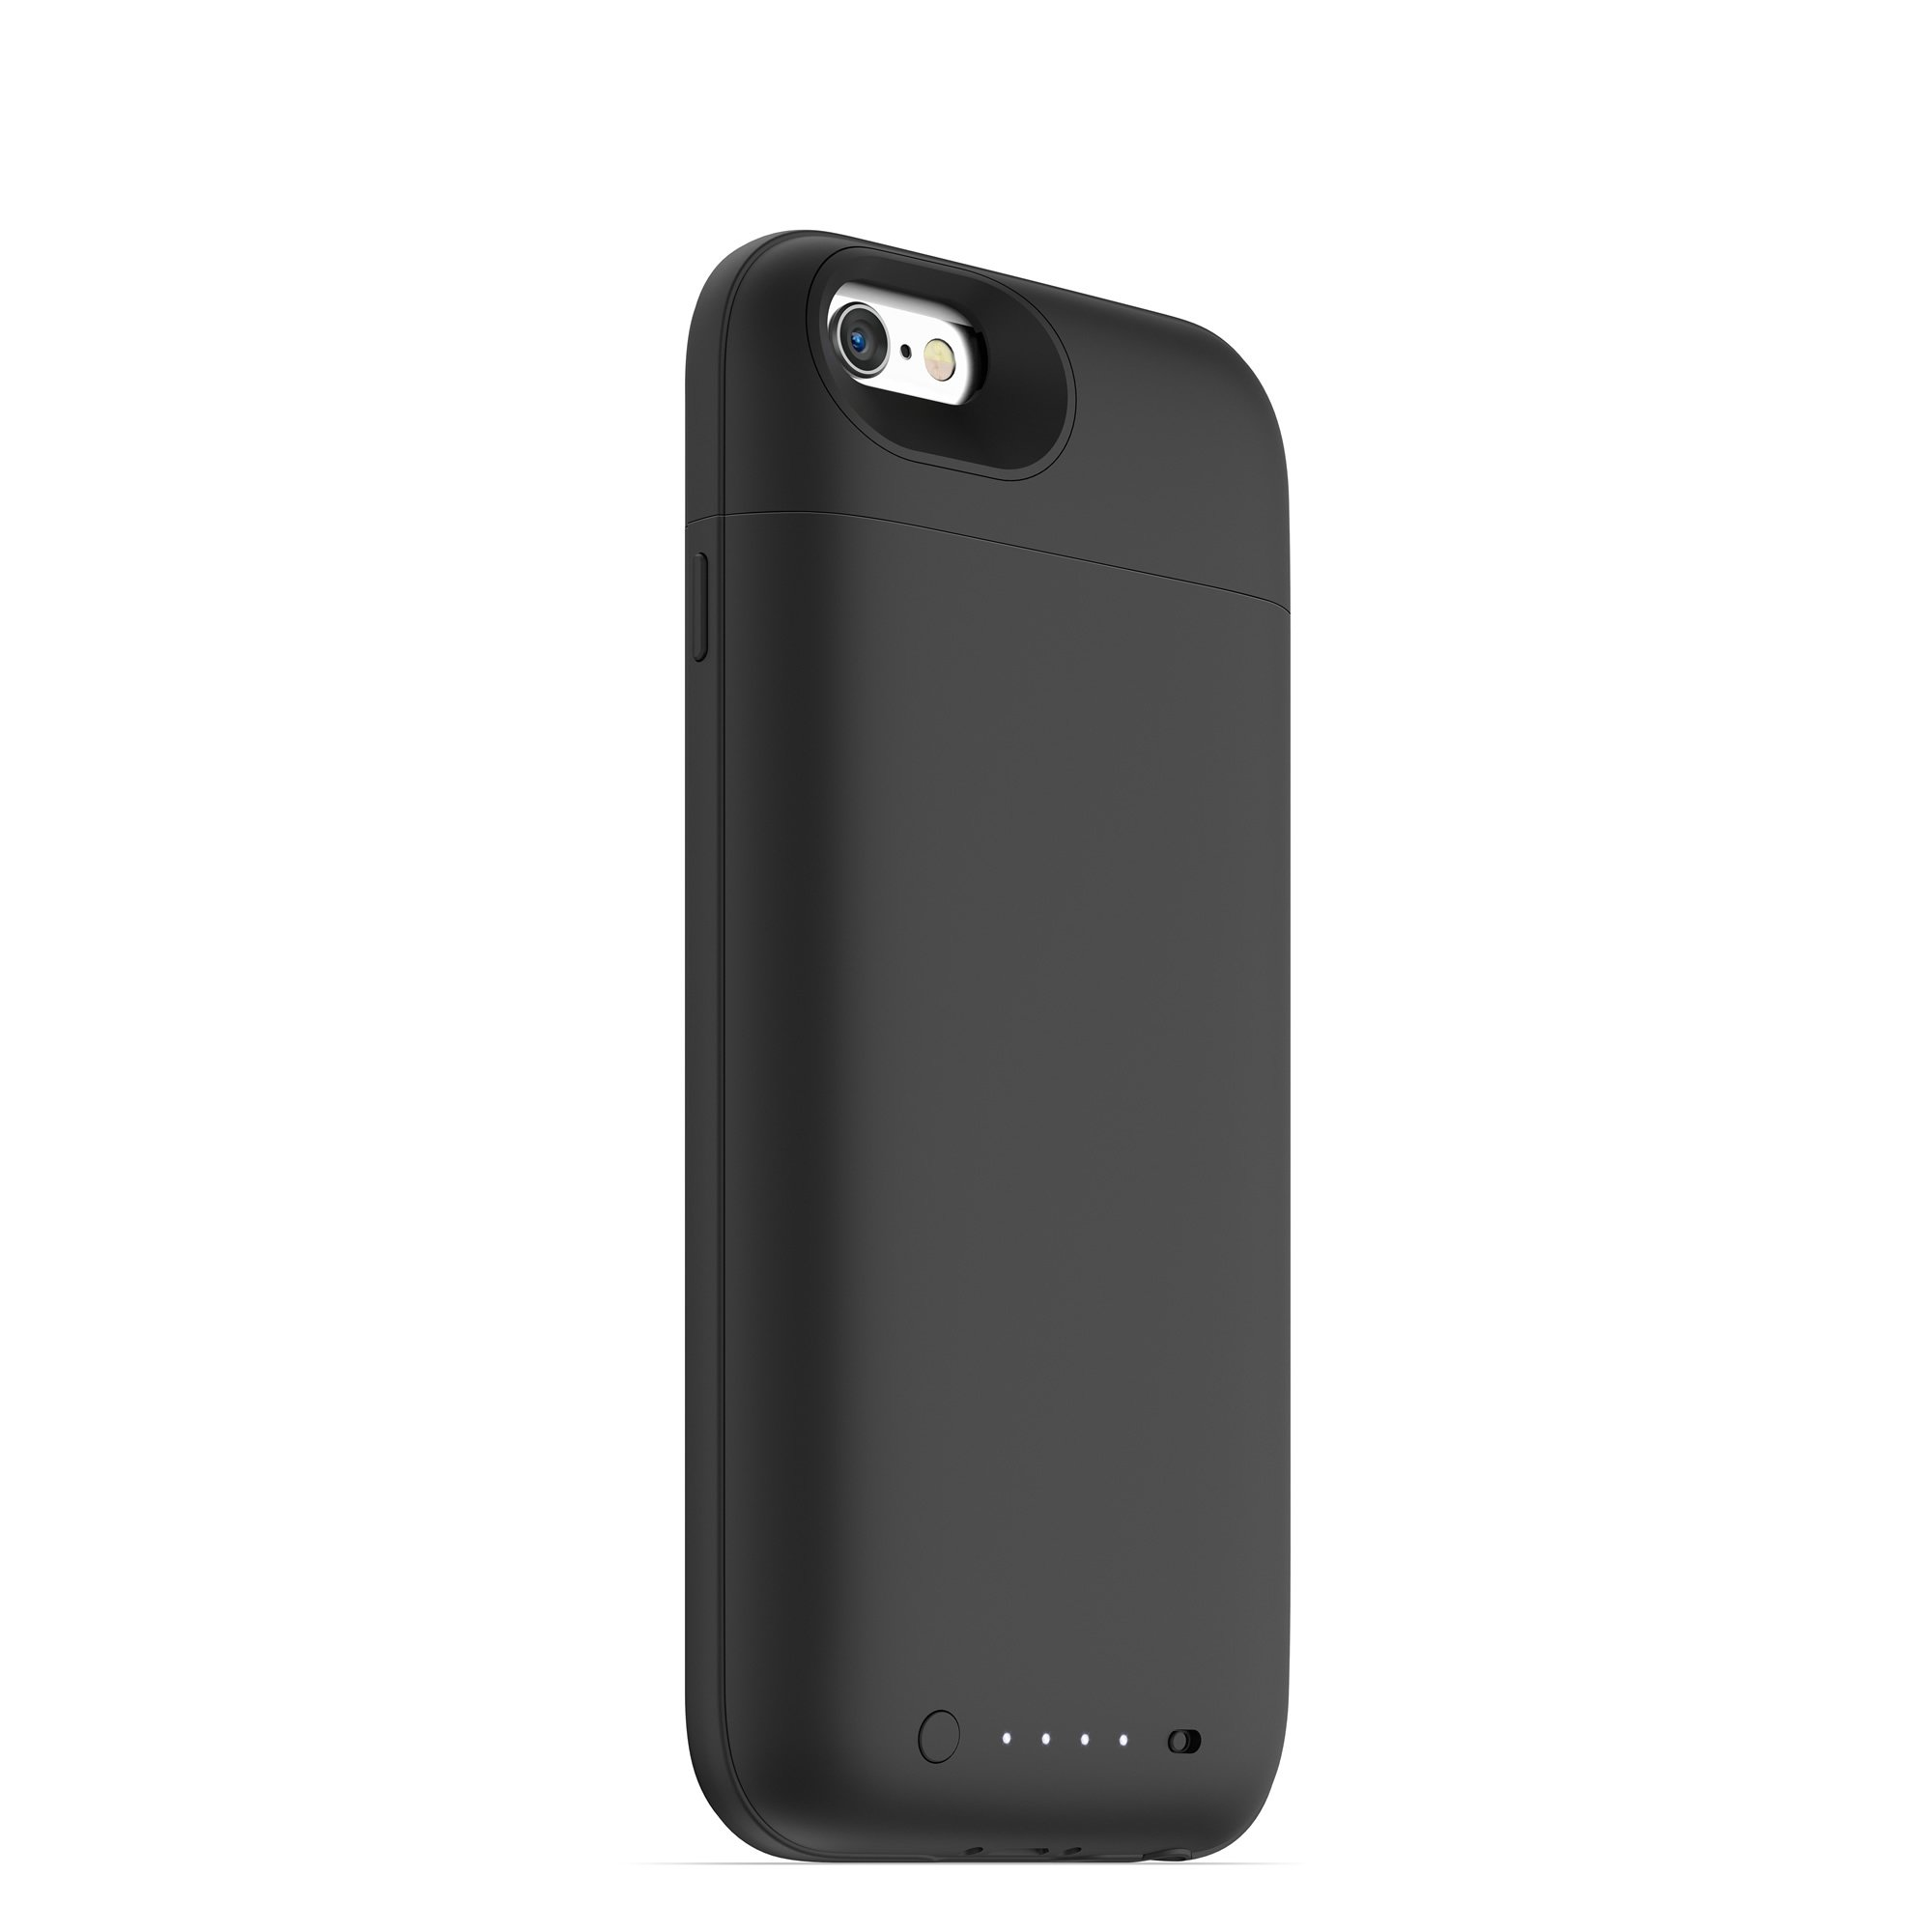 mophie juice pack air - Slim Protective Mobile Battery Pack Case for iPhone 6/6s - Black by mophie (Image #12)